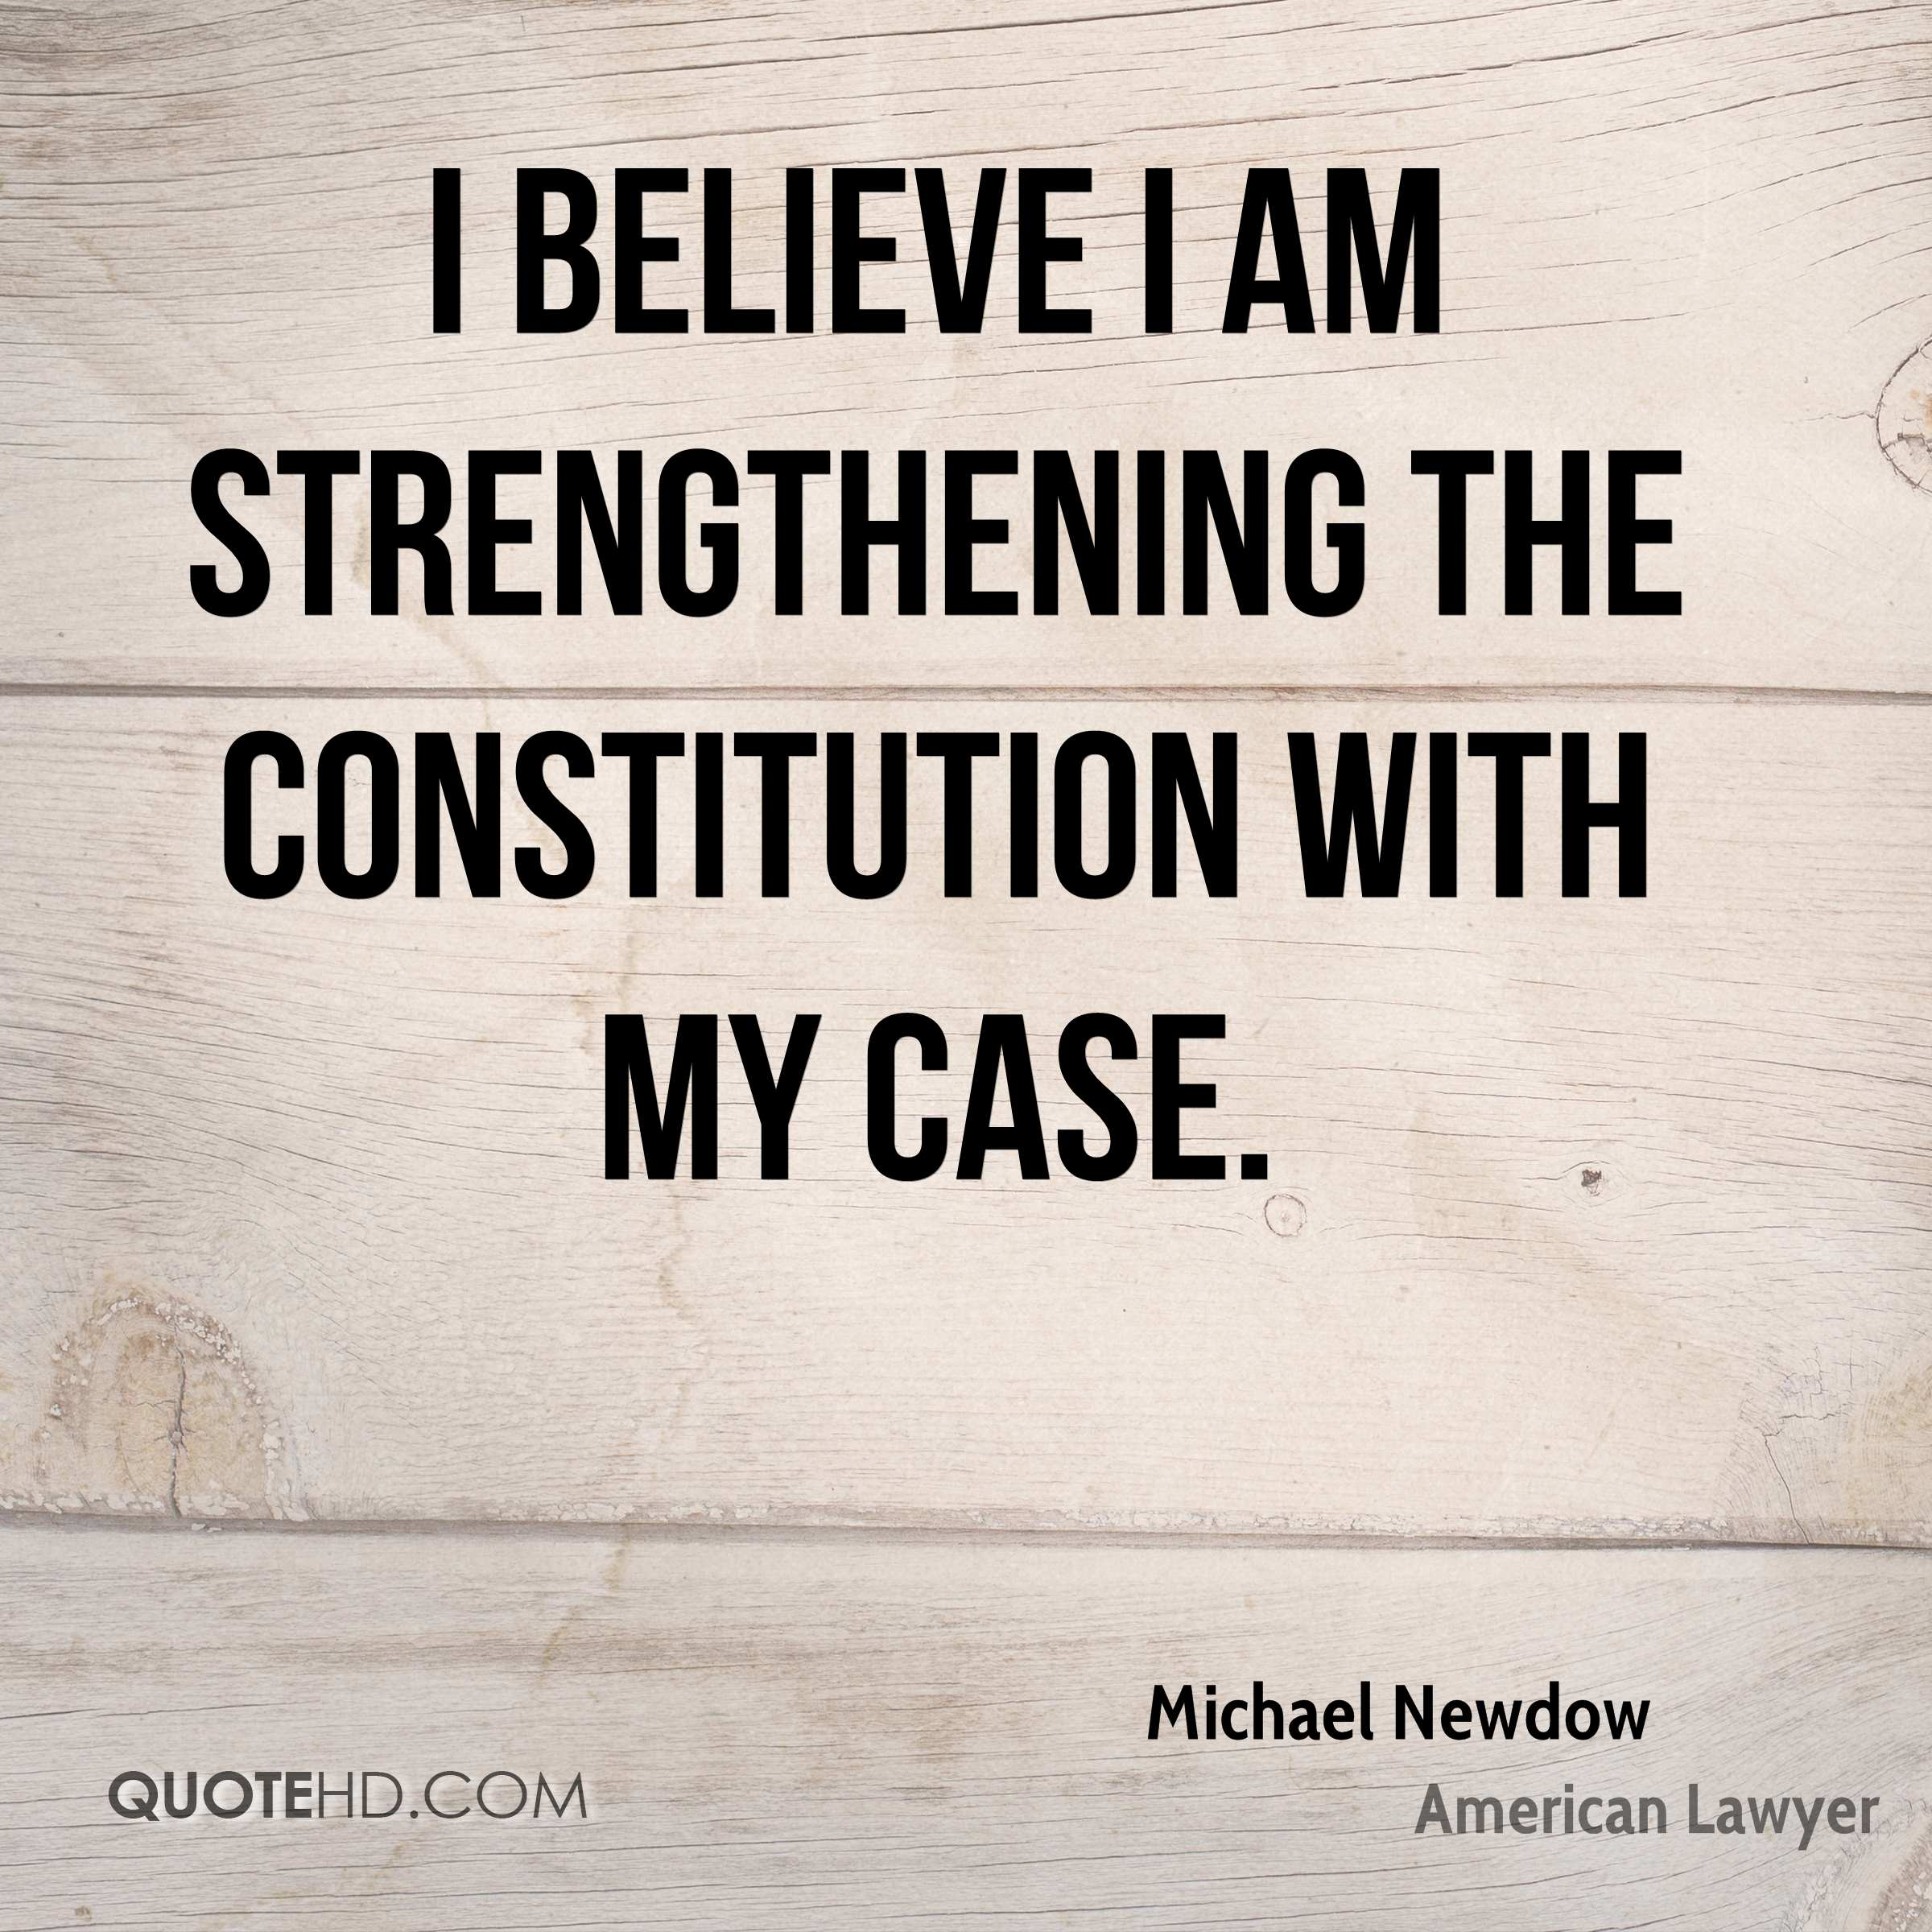 I believe I am strengthening the Constitution with my case.